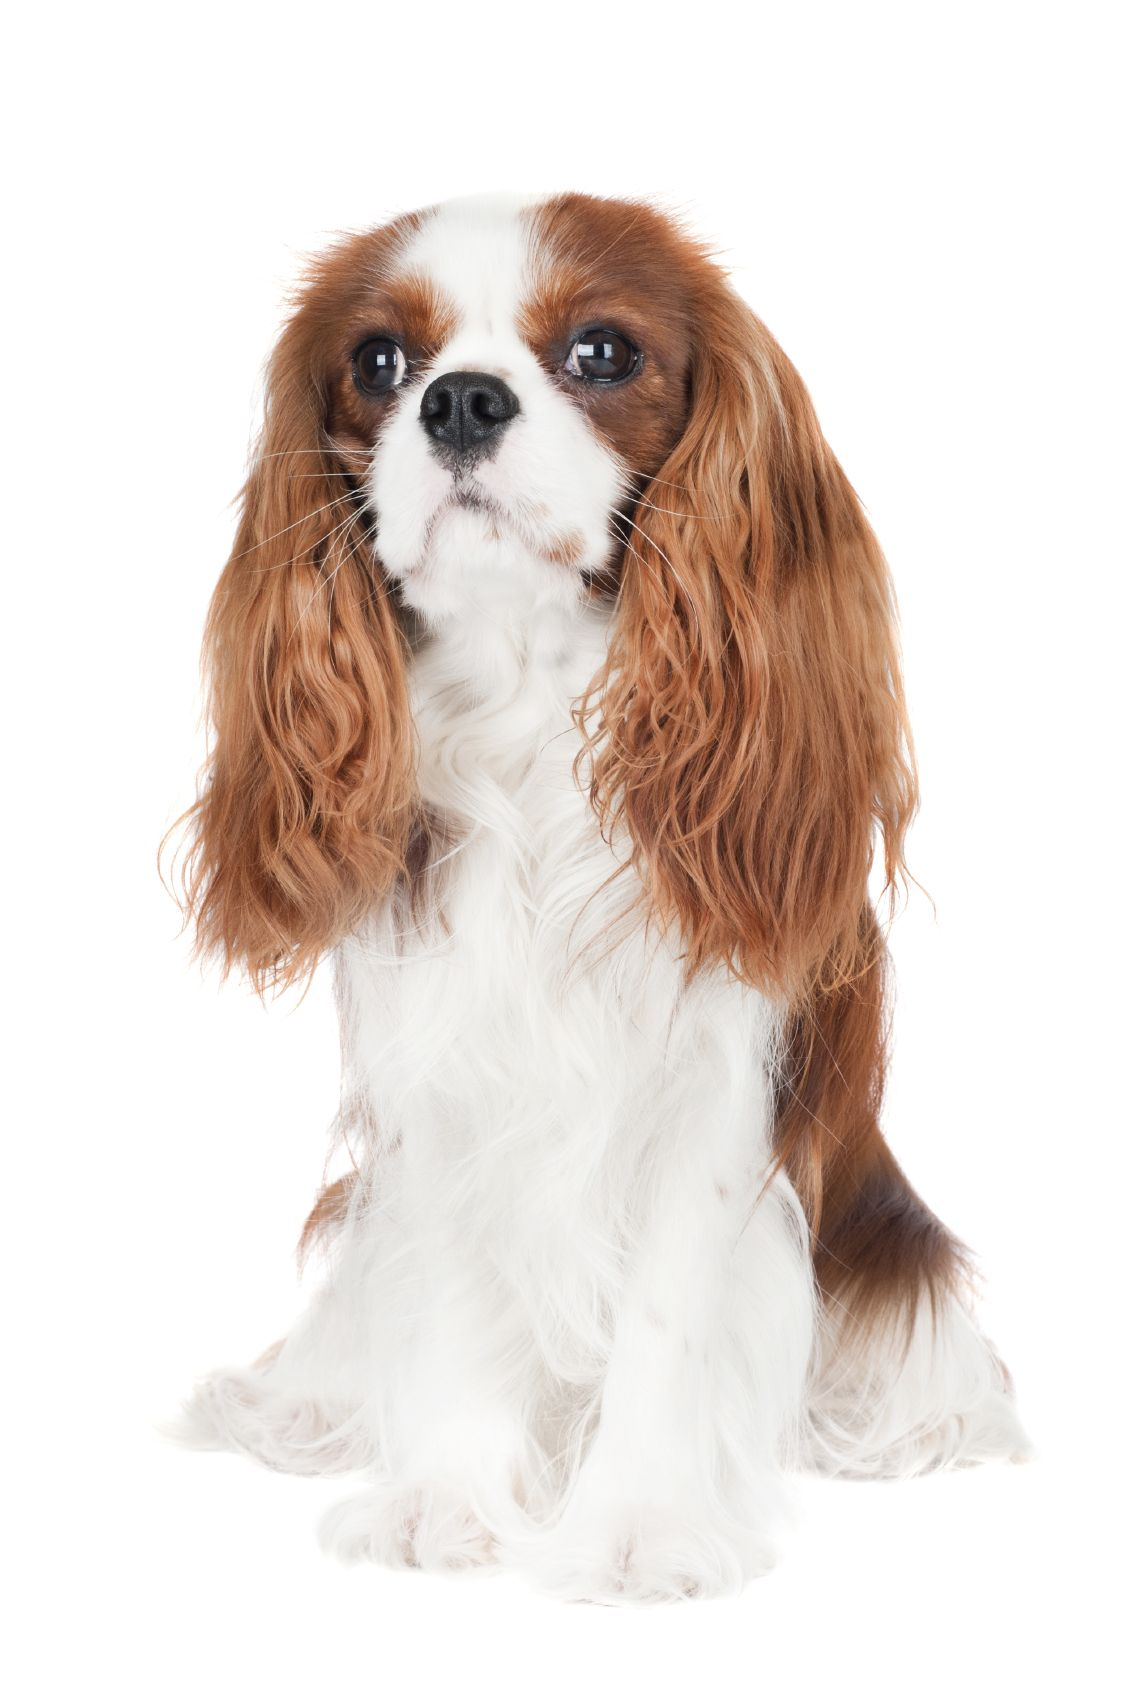 10 surprising facts about the cavalier king charles